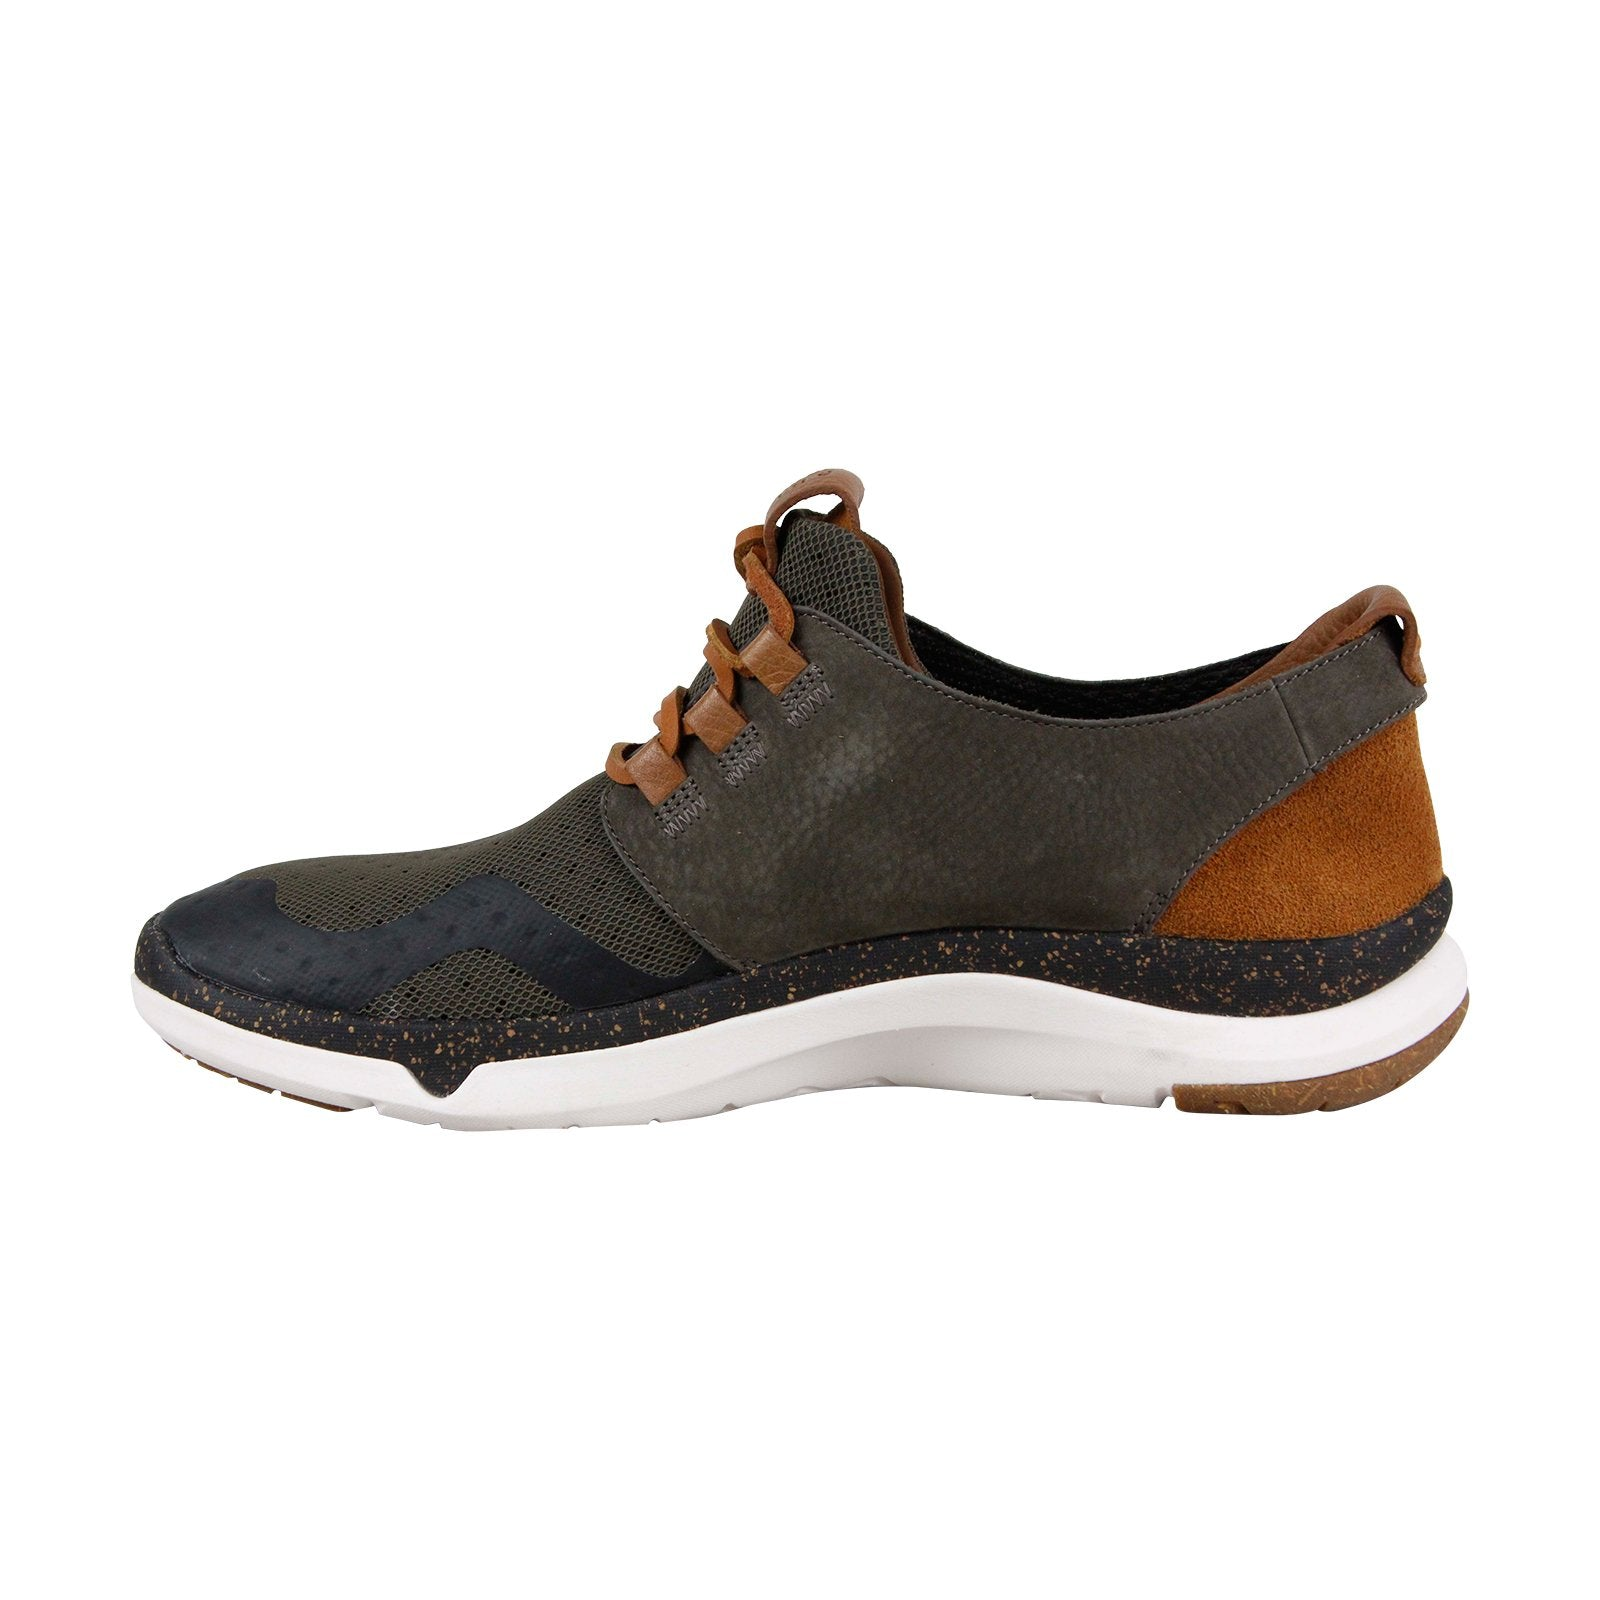 Polare insediamento jog  Clarks Privo Motion 26132785 Mens Gray Mesh Lace Up Lifestyle Sneakers -  Ruze Shoes